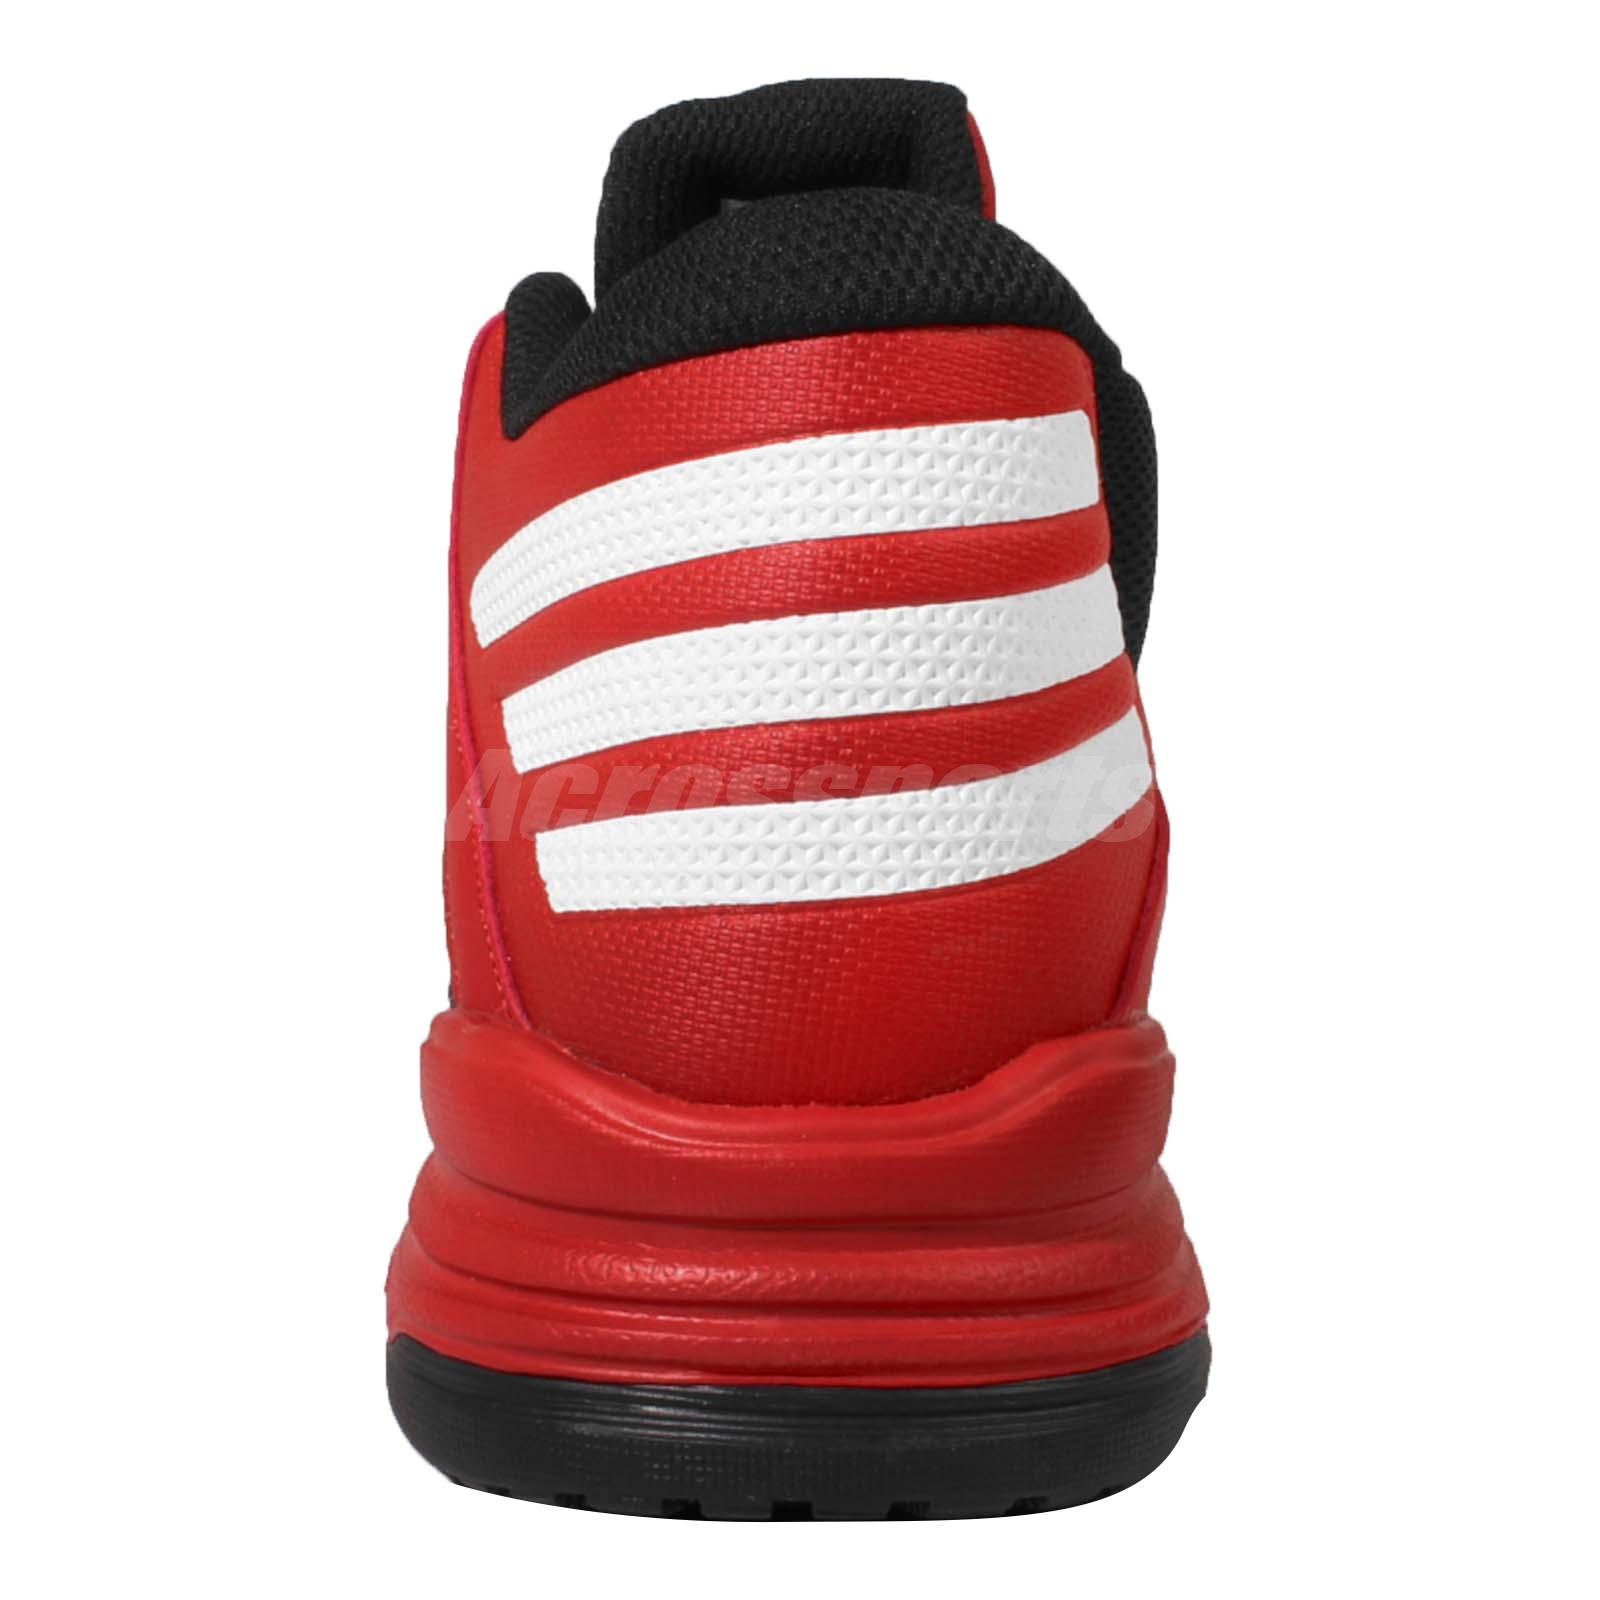 adidas basketball shoes red